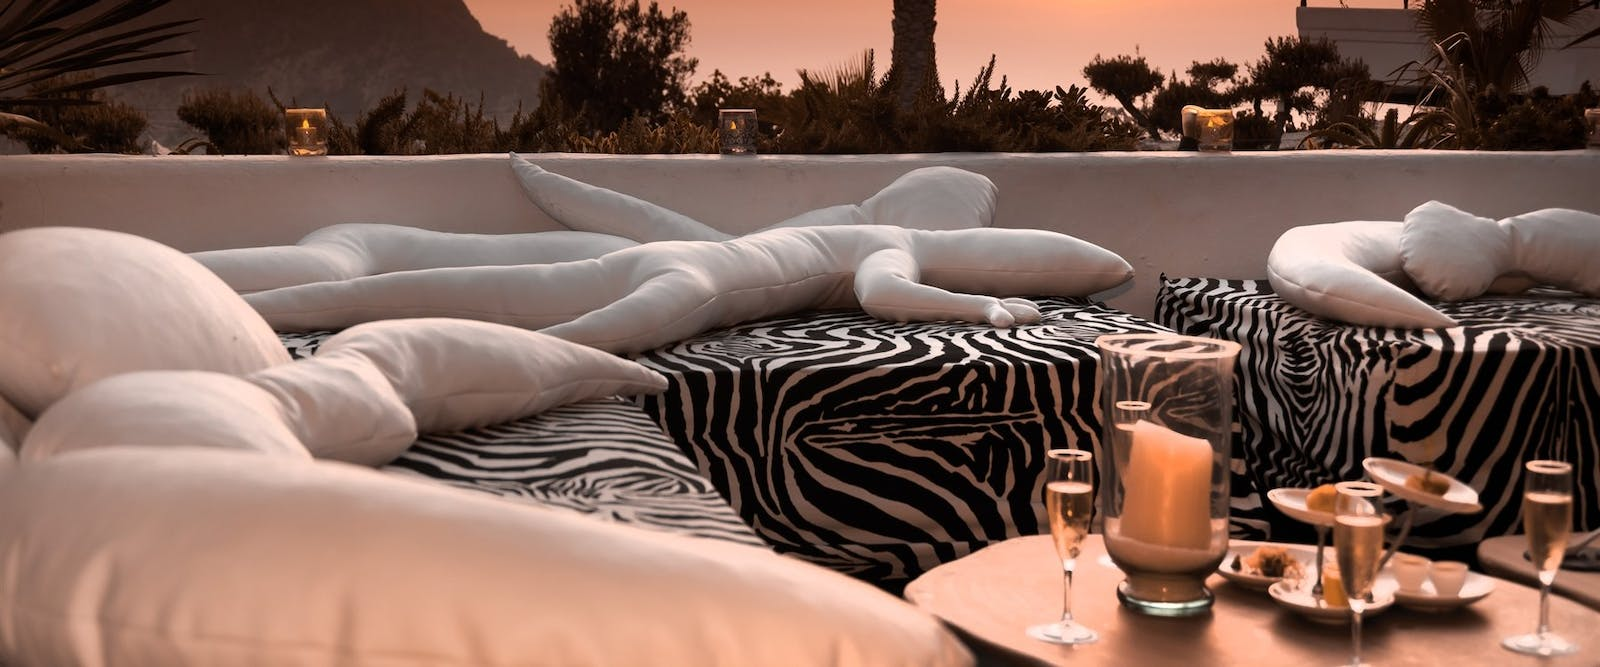 Private Event Lounge at Hotel Hacienda Na Xamena, Ibiza, Spain